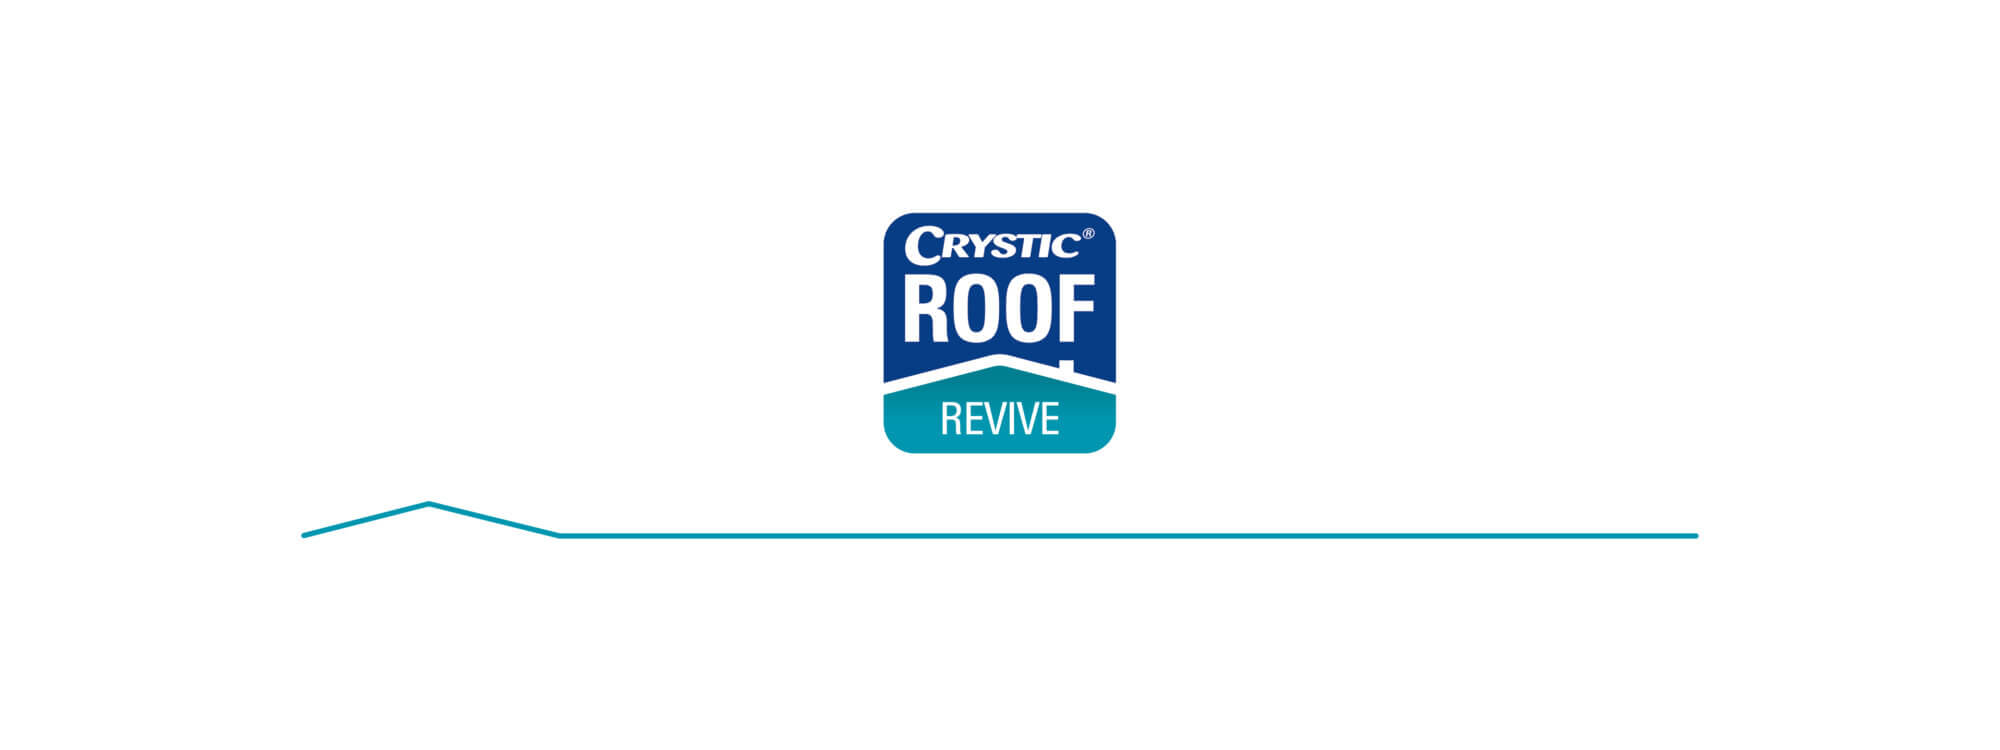 CrysticROOF Revive restores 1000 m2 roof in South West England